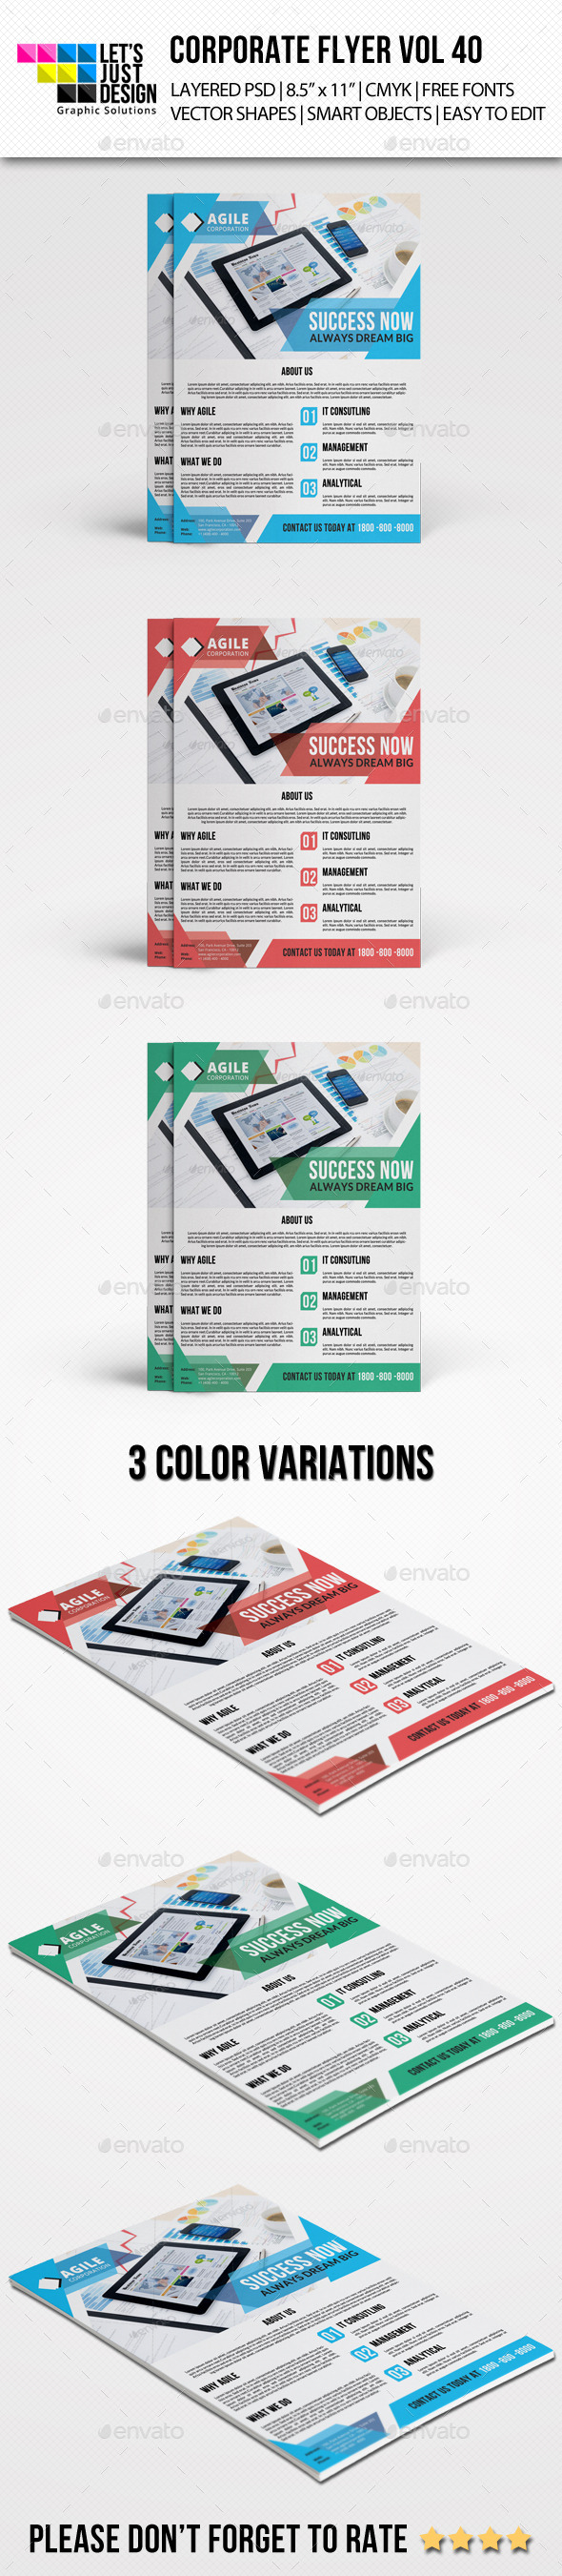 GraphicRiver Corporate Flyer Template Vol 40 9799477